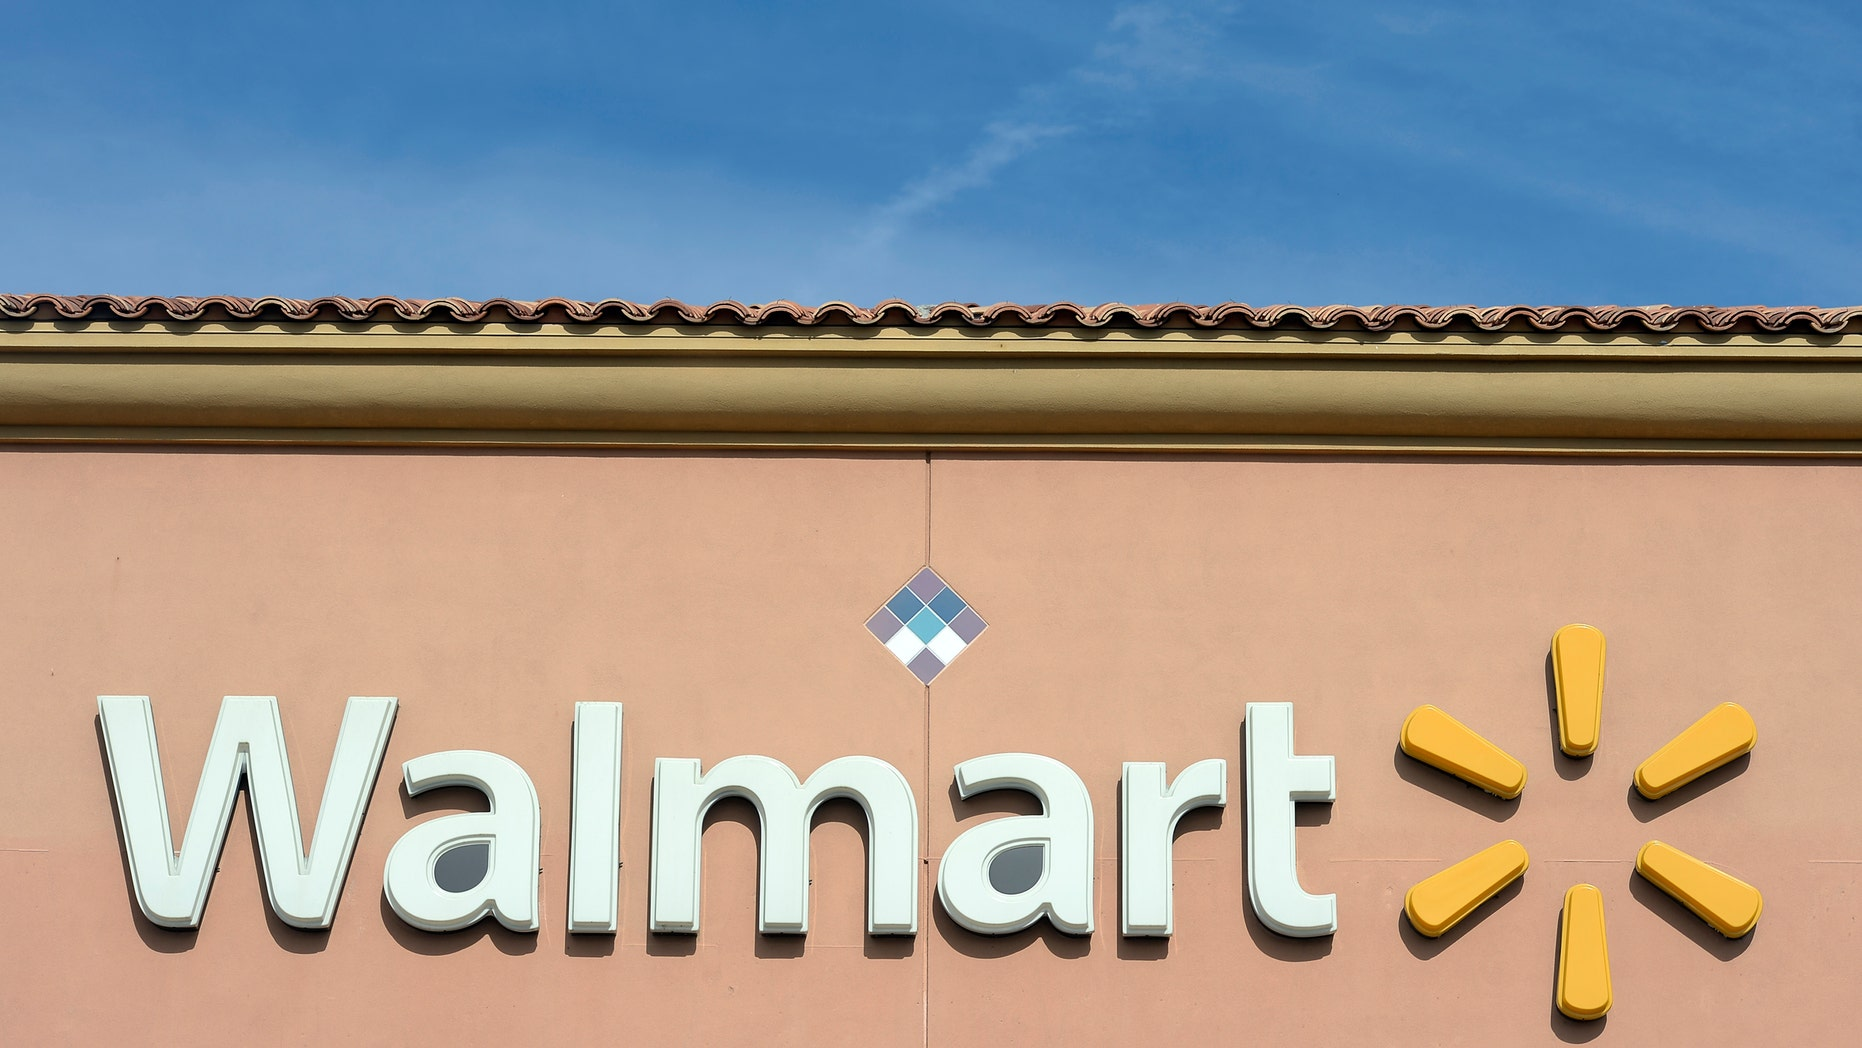 File photo - The Walmart logo is pictured at its store in the Porter Ranch section of Los Angeles Nov. 26, 2013. (REUTERS/Kevork Djansezian)